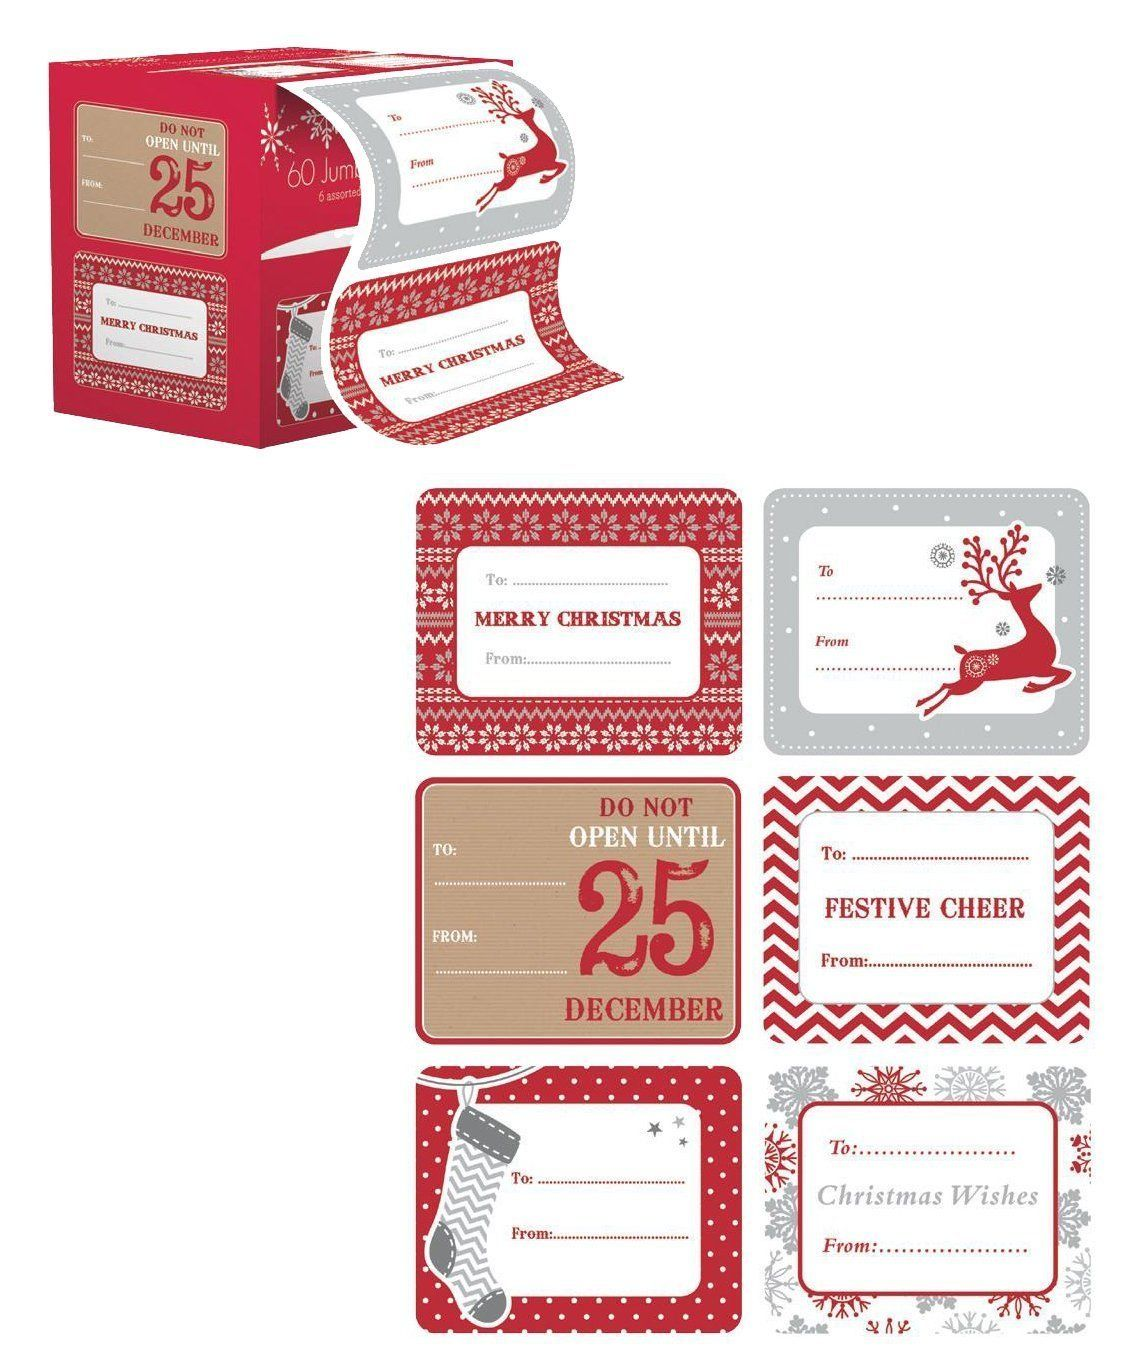 Jumbo Christmas Gift Tag Stickers 60 Count Modern Red, White, Silver ...